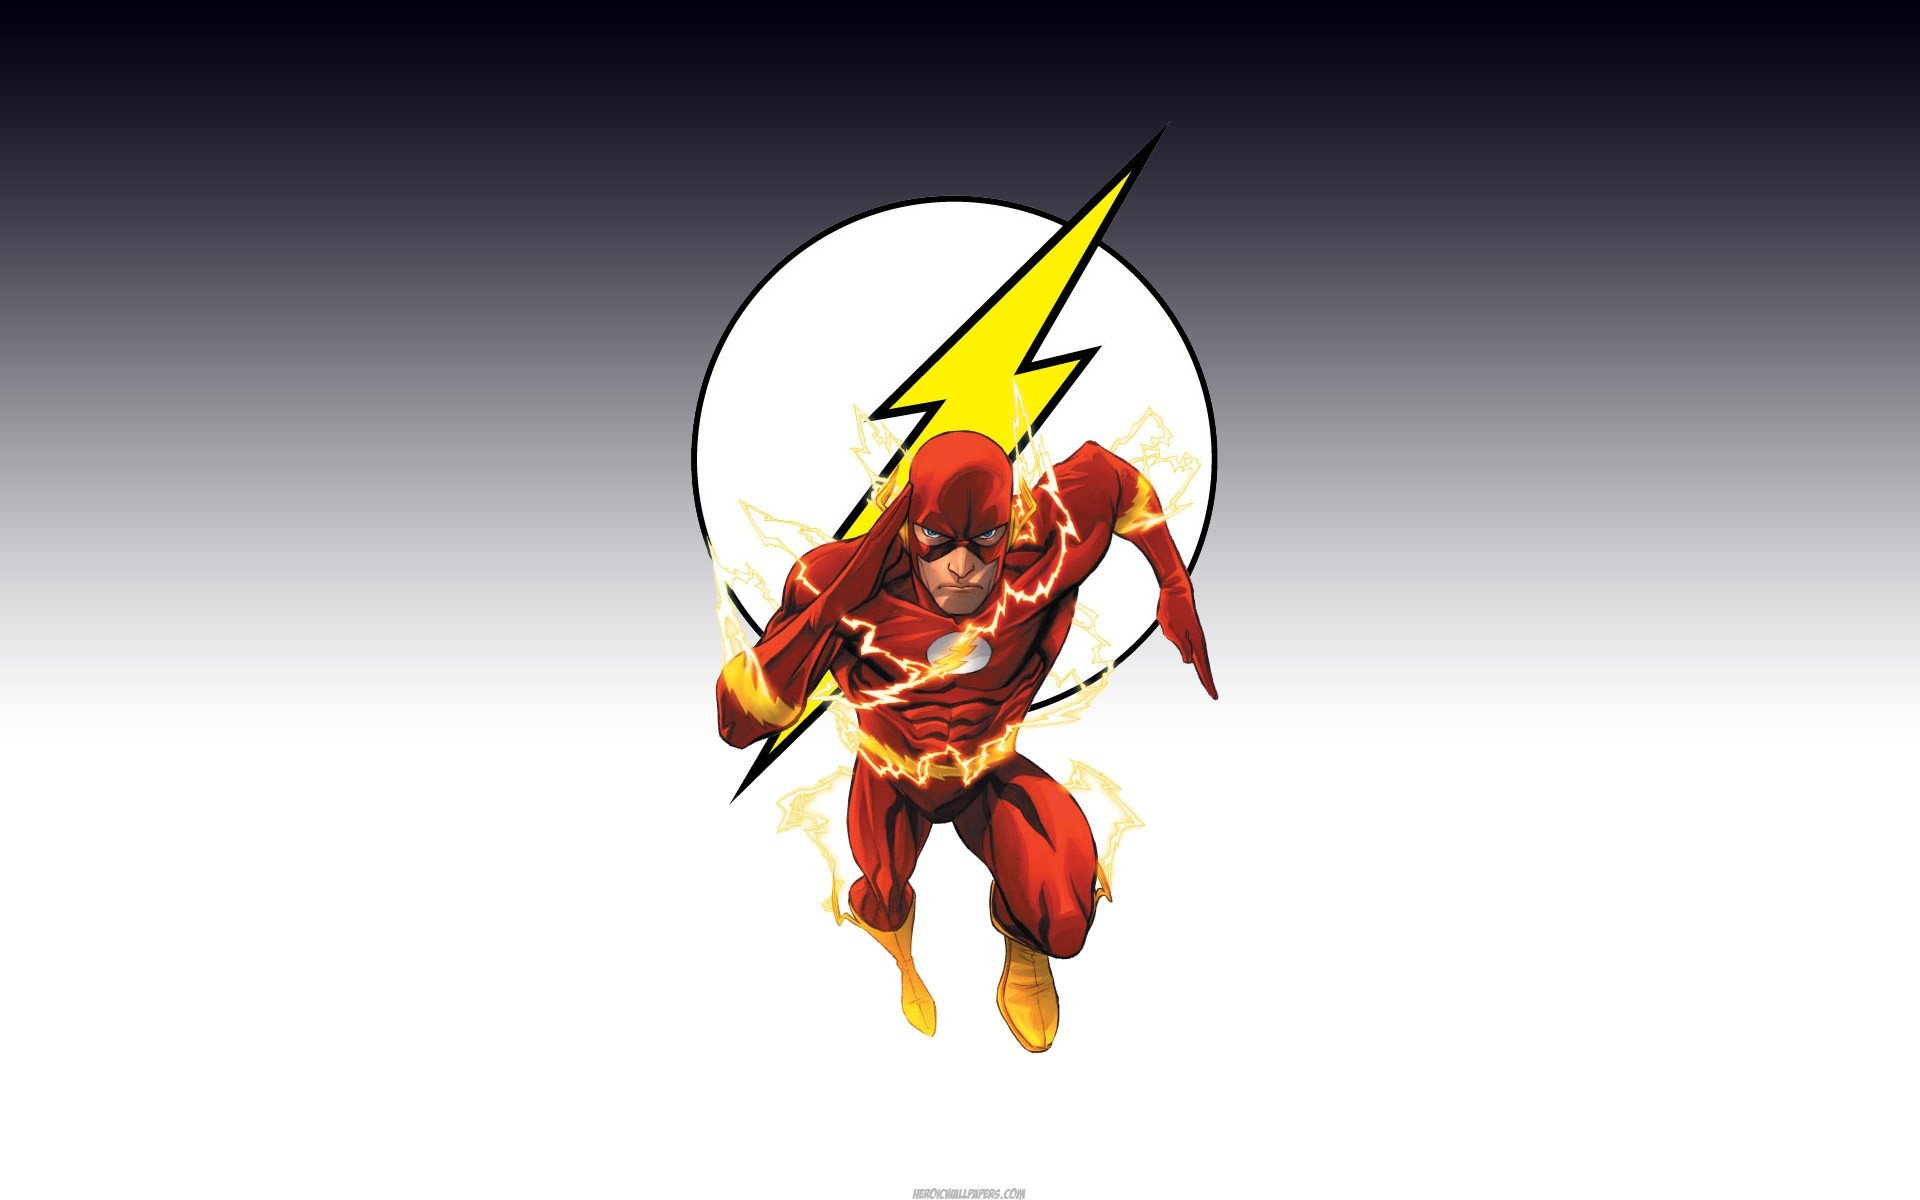 DC Comics superheroes Flash superhero wallpaper 1920x1200 294101 1920x1200